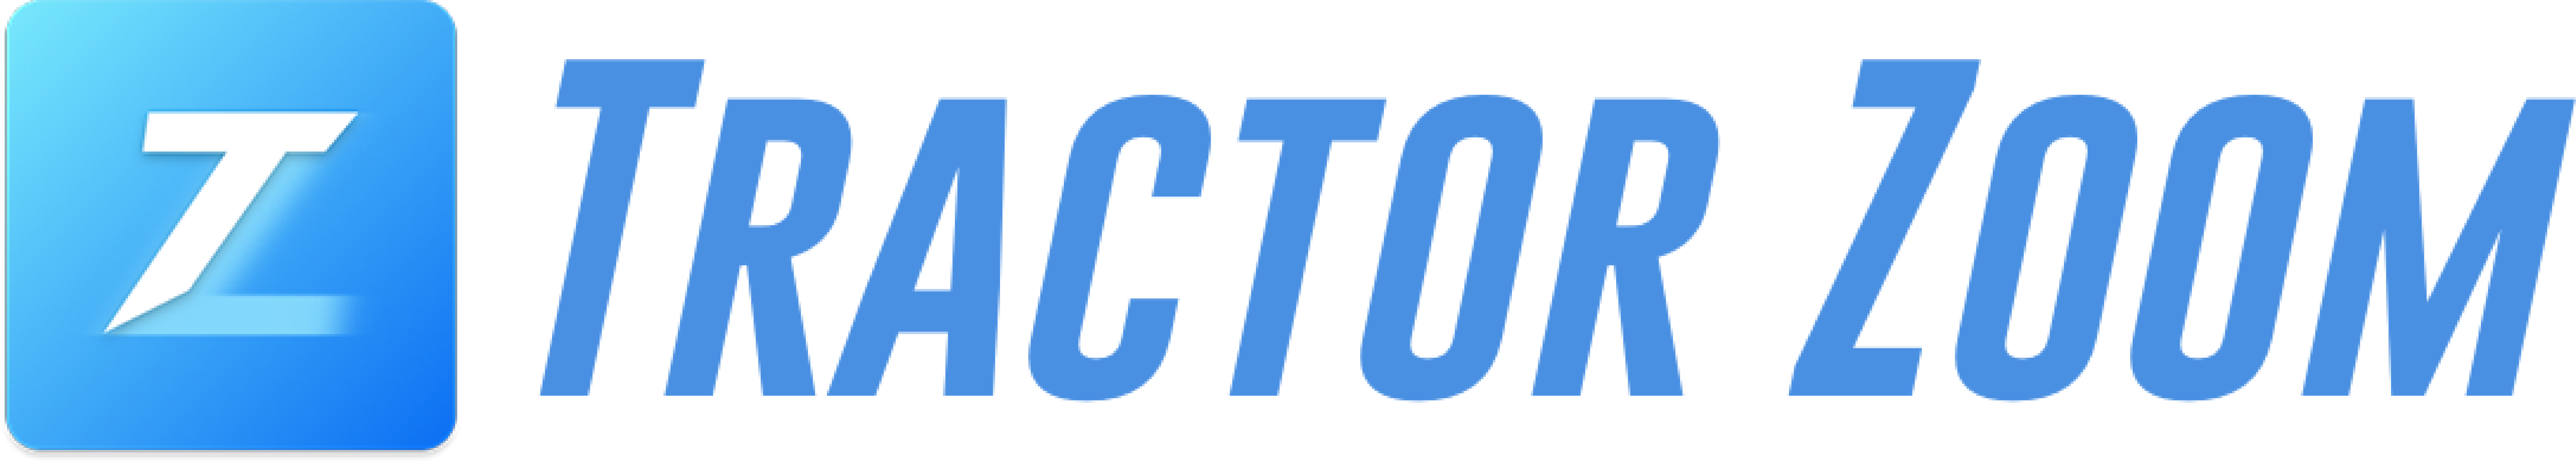 Tractor Zoom Logo